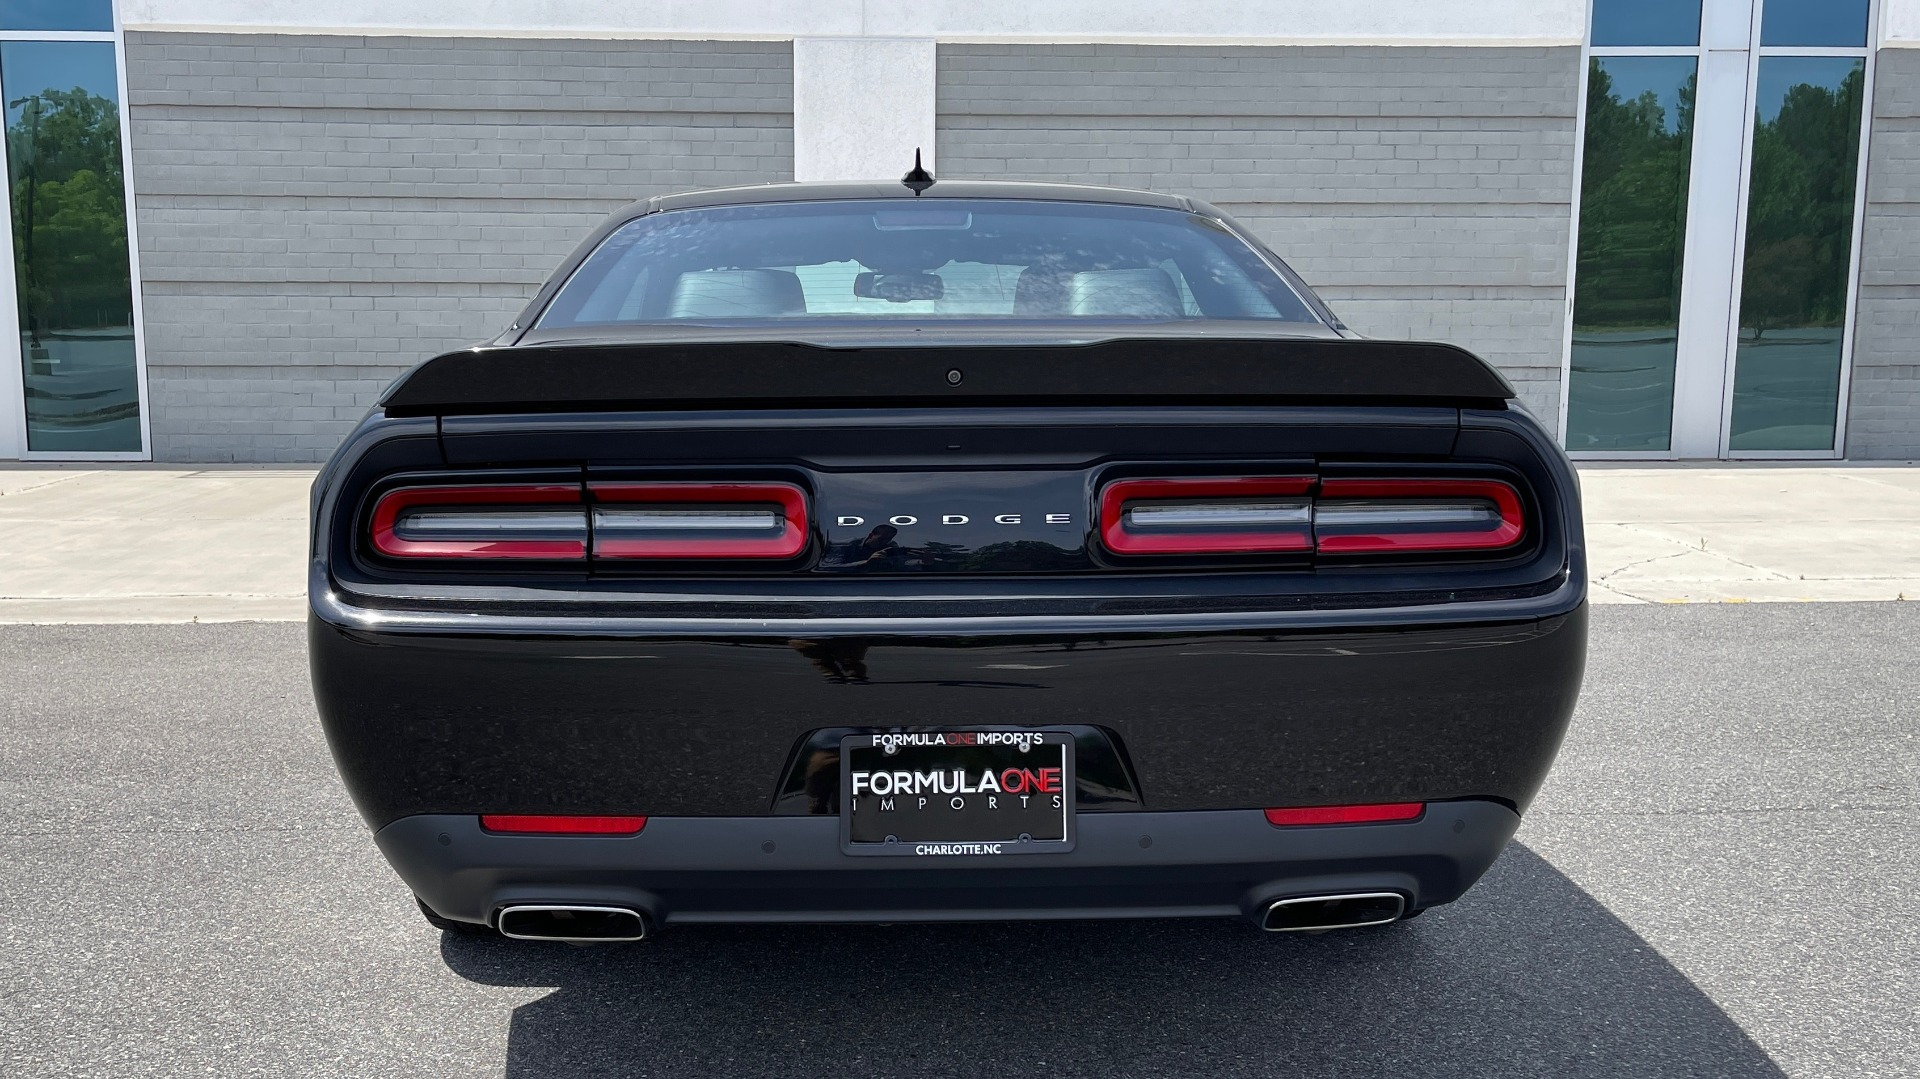 Used 2015 Dodge CHALLENGER SXT PLUS COUPE / 3.6L V6 / 8-SPD AUTO / NAV / ALPINE / SUNROOF / REARVIEW for sale Sold at Formula Imports in Charlotte NC 28227 19